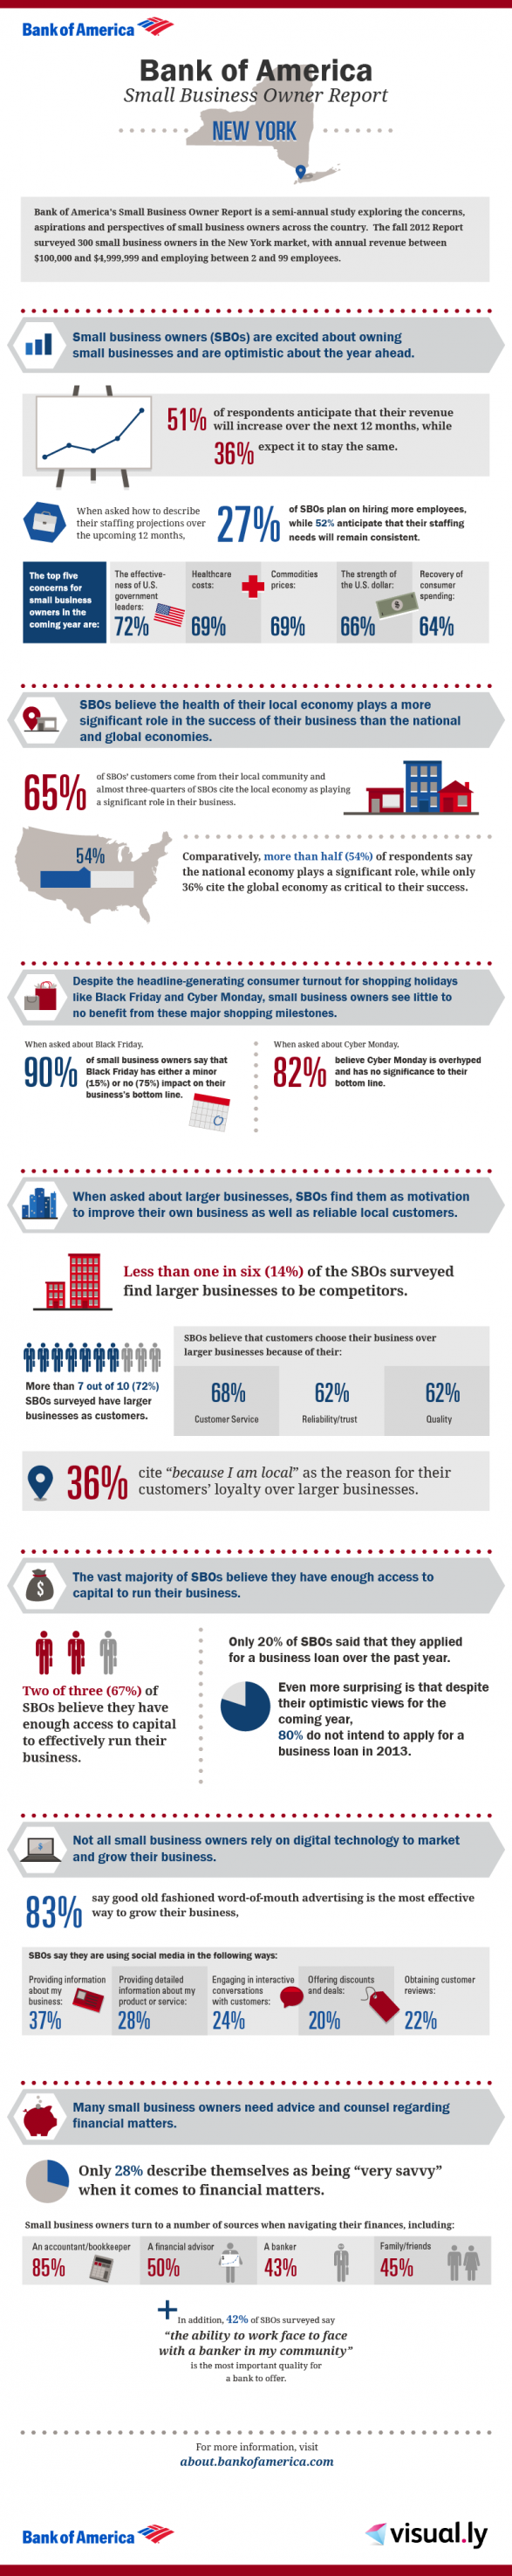 Bank of America Small Business Owner Report: NYC Local Breakdown